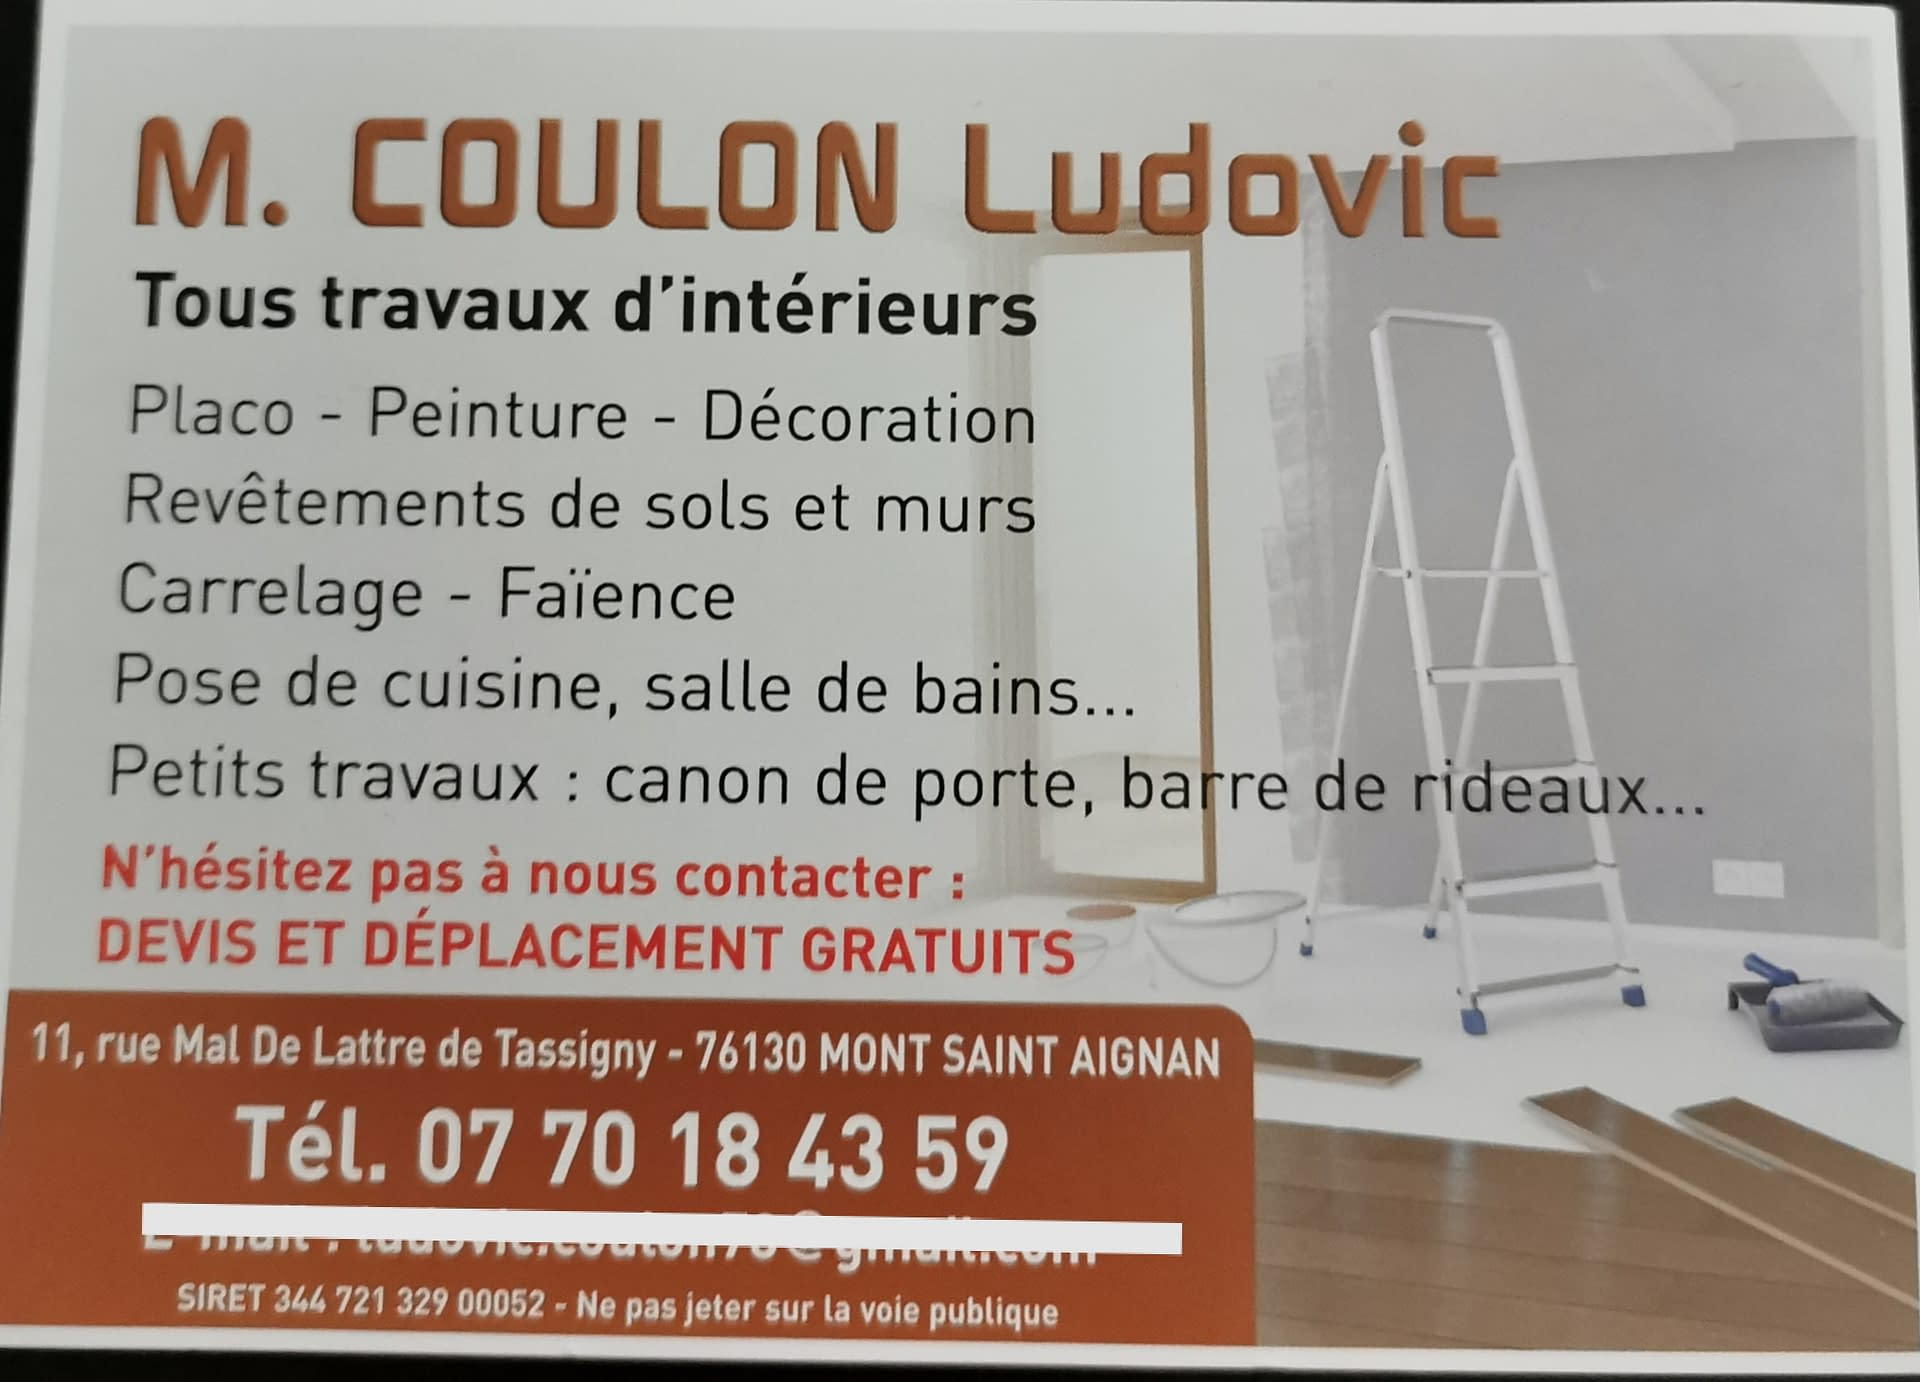 Coulon Ludovic